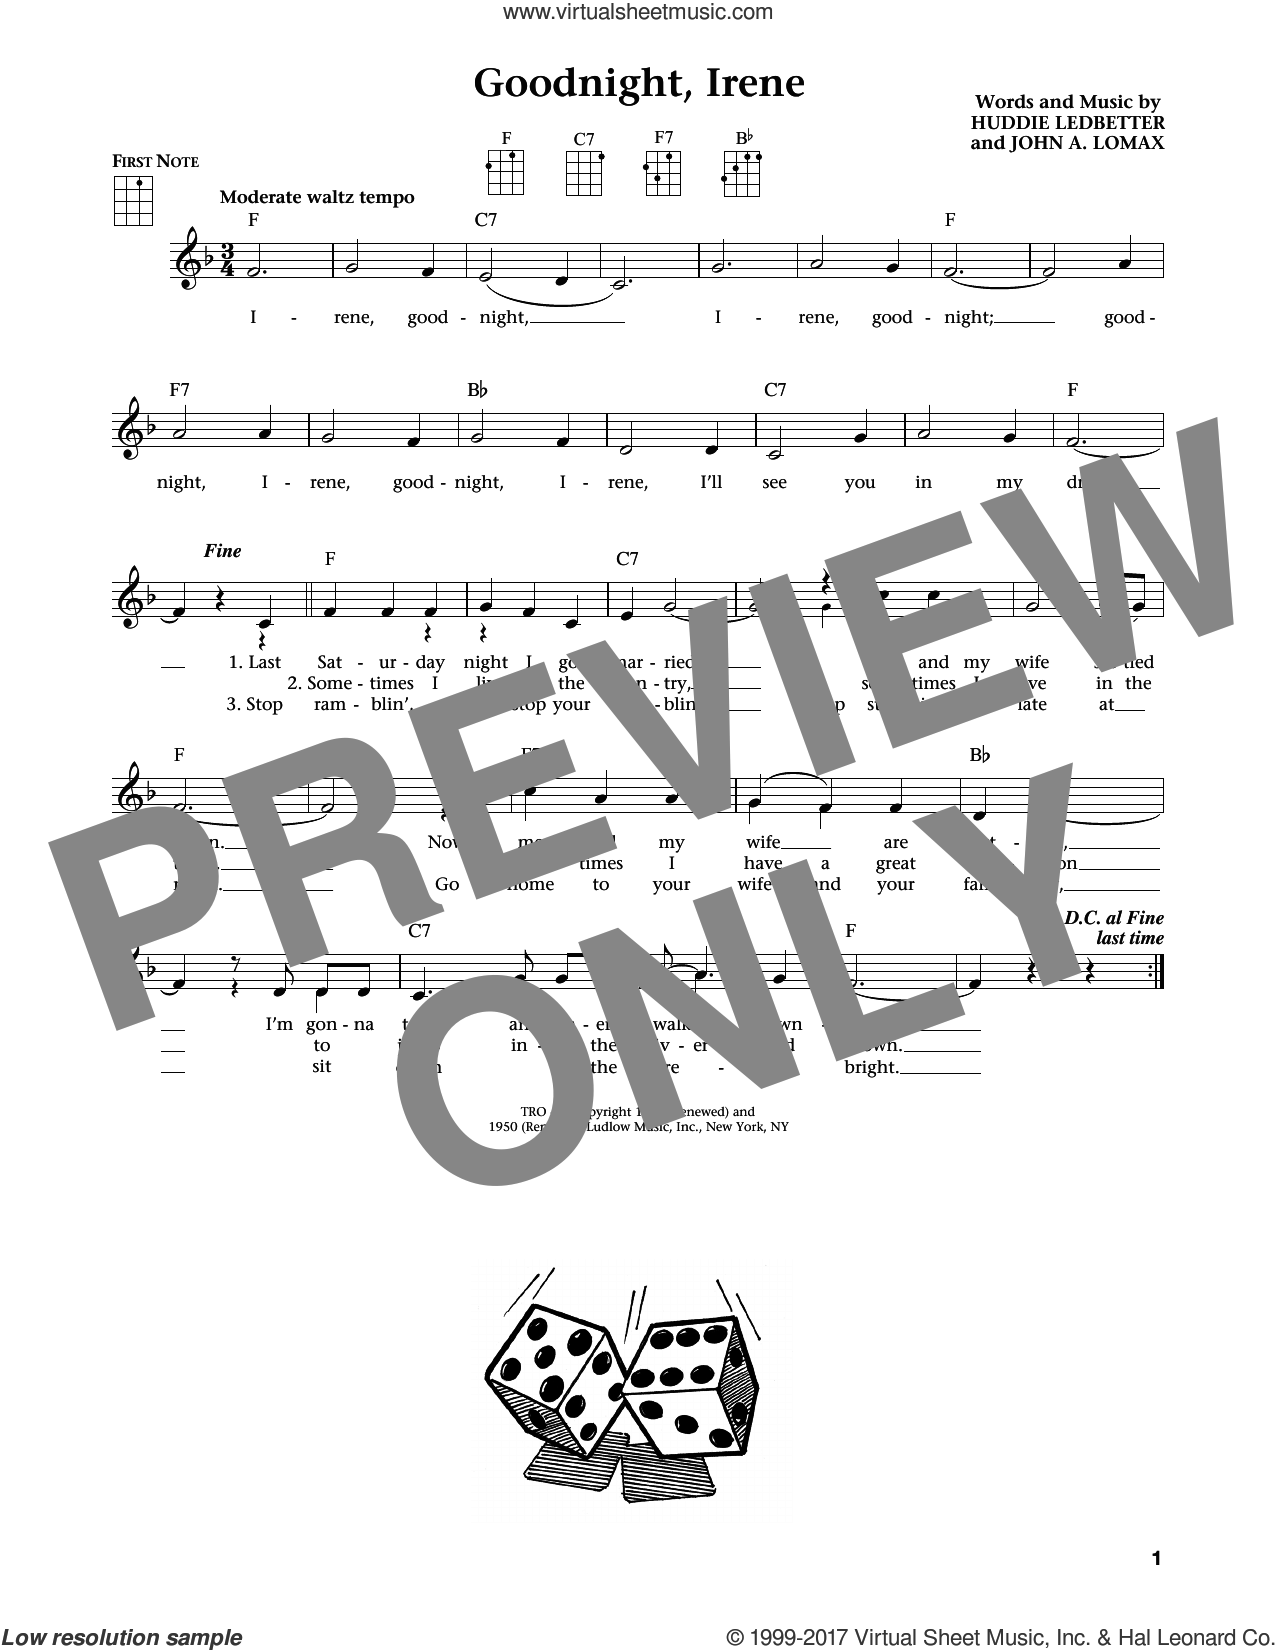 Goodnight, Irene sheet music for ukulele by Ernest Tubb & Red Foley, Jim Beloff, Johnny Cash, Liz Beloff, Peter, Paul & Mary, Huddie Ledbetter and John A. Lomax, intermediate skill level